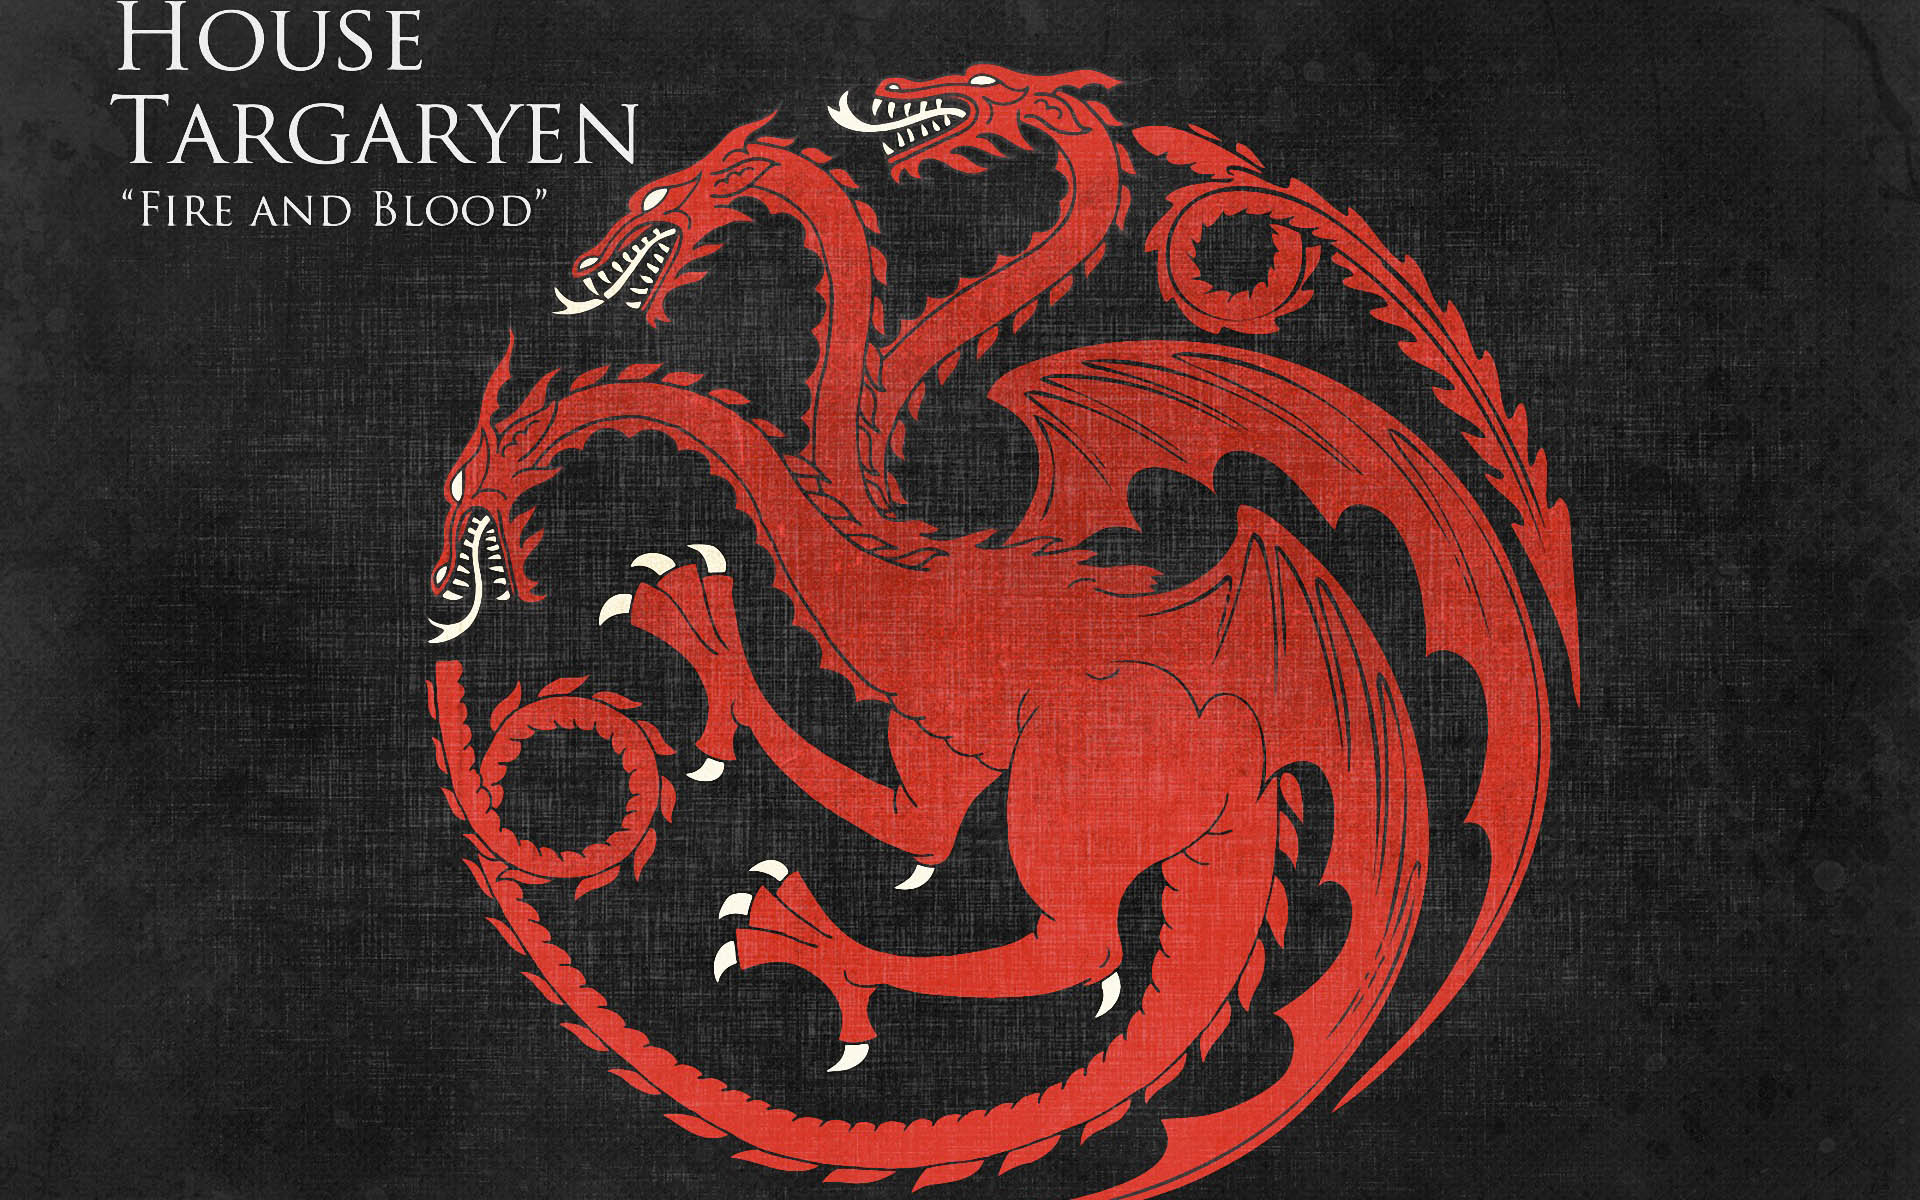 Game of Thrones Wallpaper 1920x1200 Wallpapers 1920x1200 Wallpapers 1920x1200